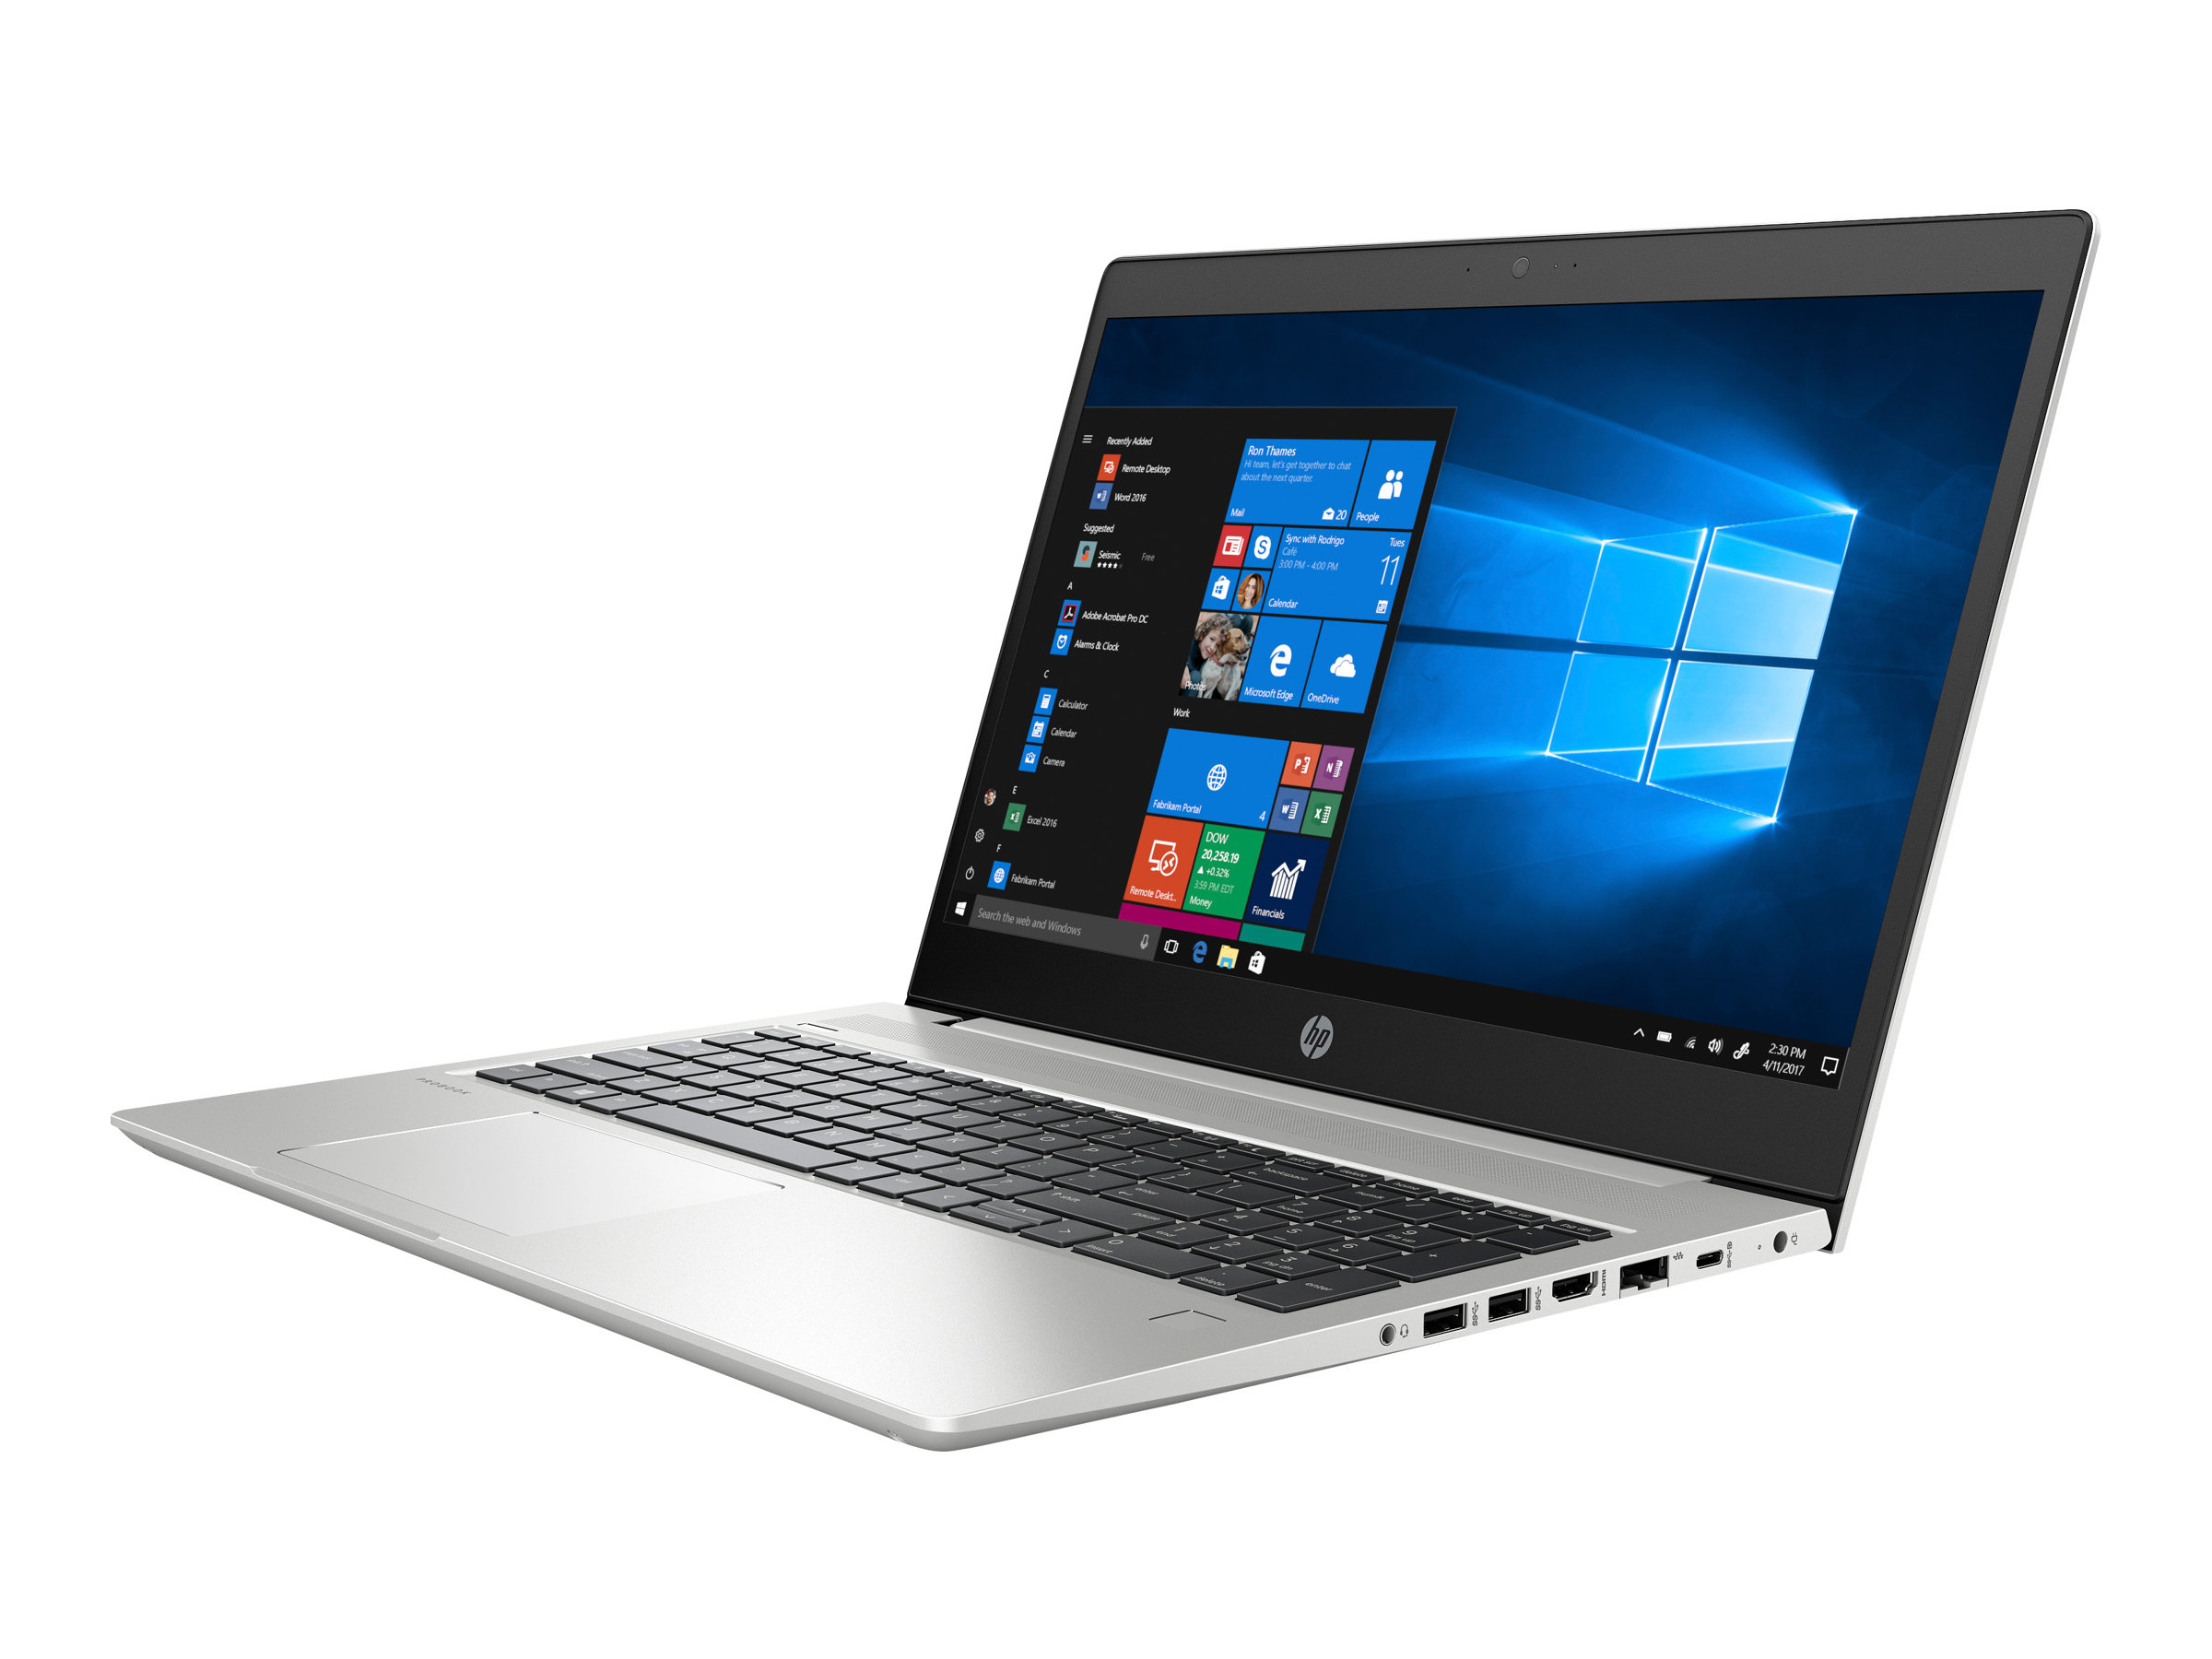 Hp probook 450 g6 core i5 8265u 1 6 ghz win 10 pro 64 bit 8 gb ram 256 gb ssd nvme hp value 1 tb hdd 39 6 cm 15 6 ips 1920 x 1080 full hd 11387814 7de97ea abd